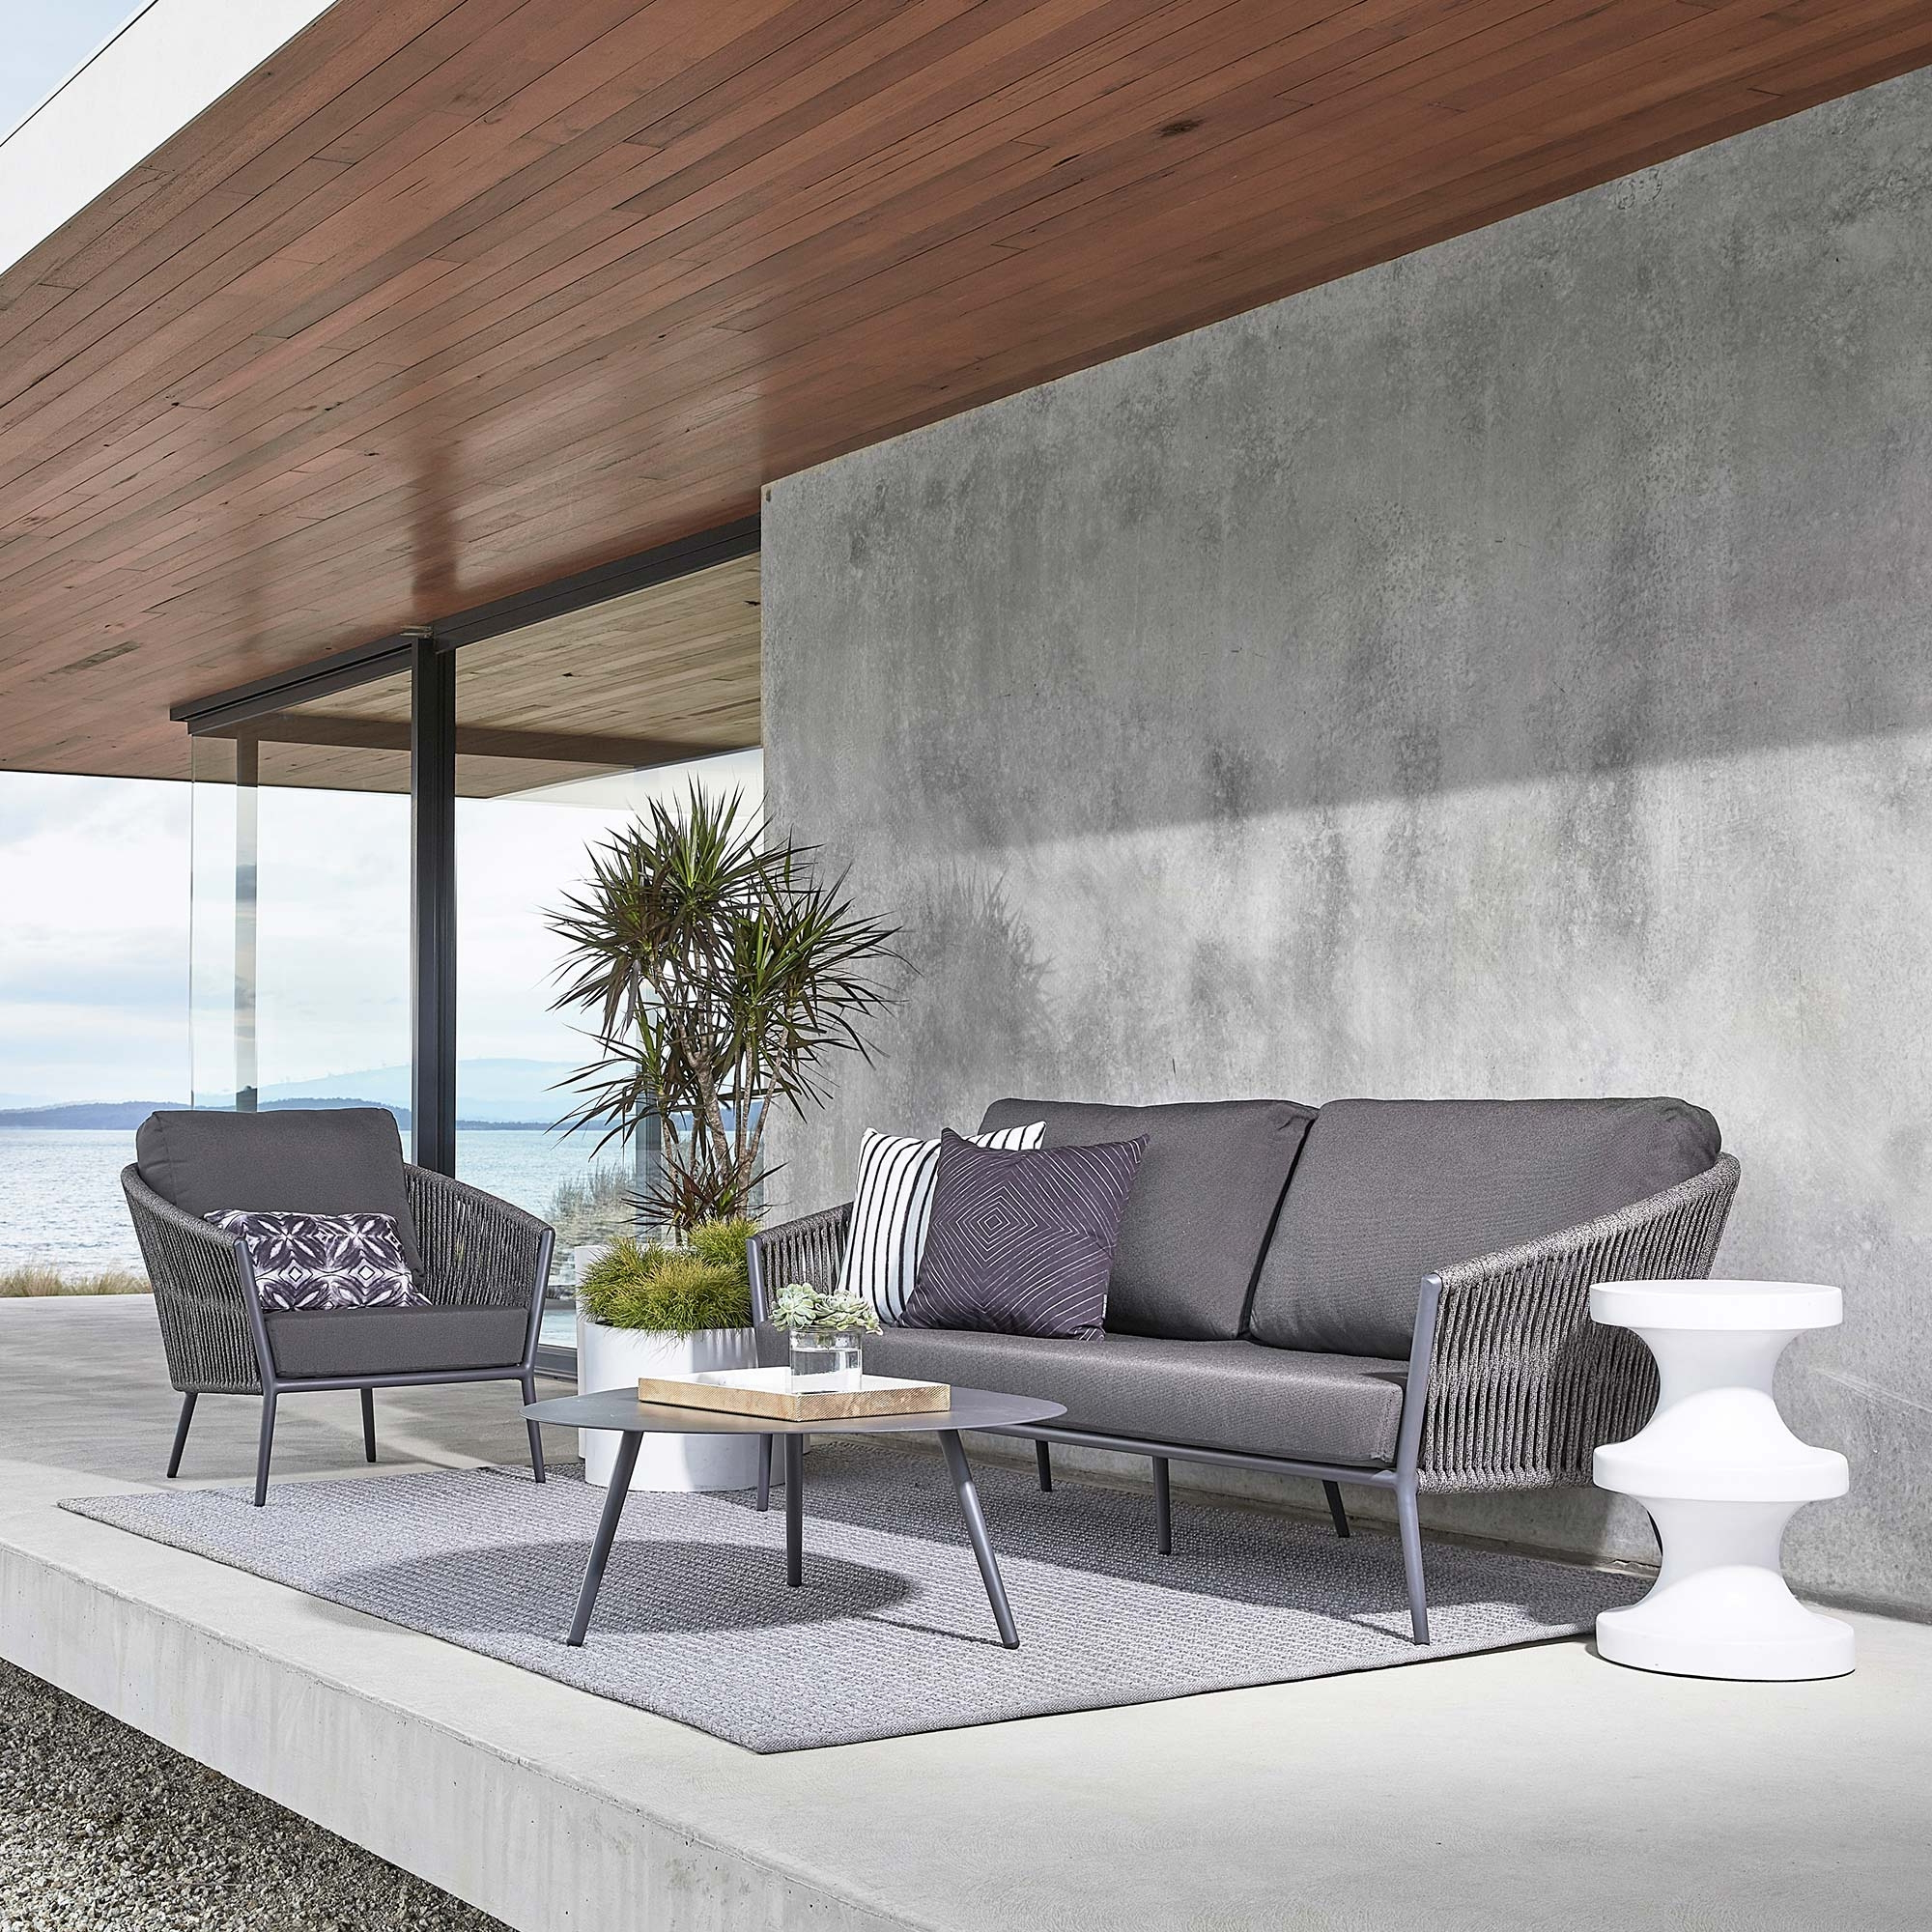 2020 Catalina Outdoor Sofa With Catalina Outdoor Sofas With Cushions (View 1 of 11)